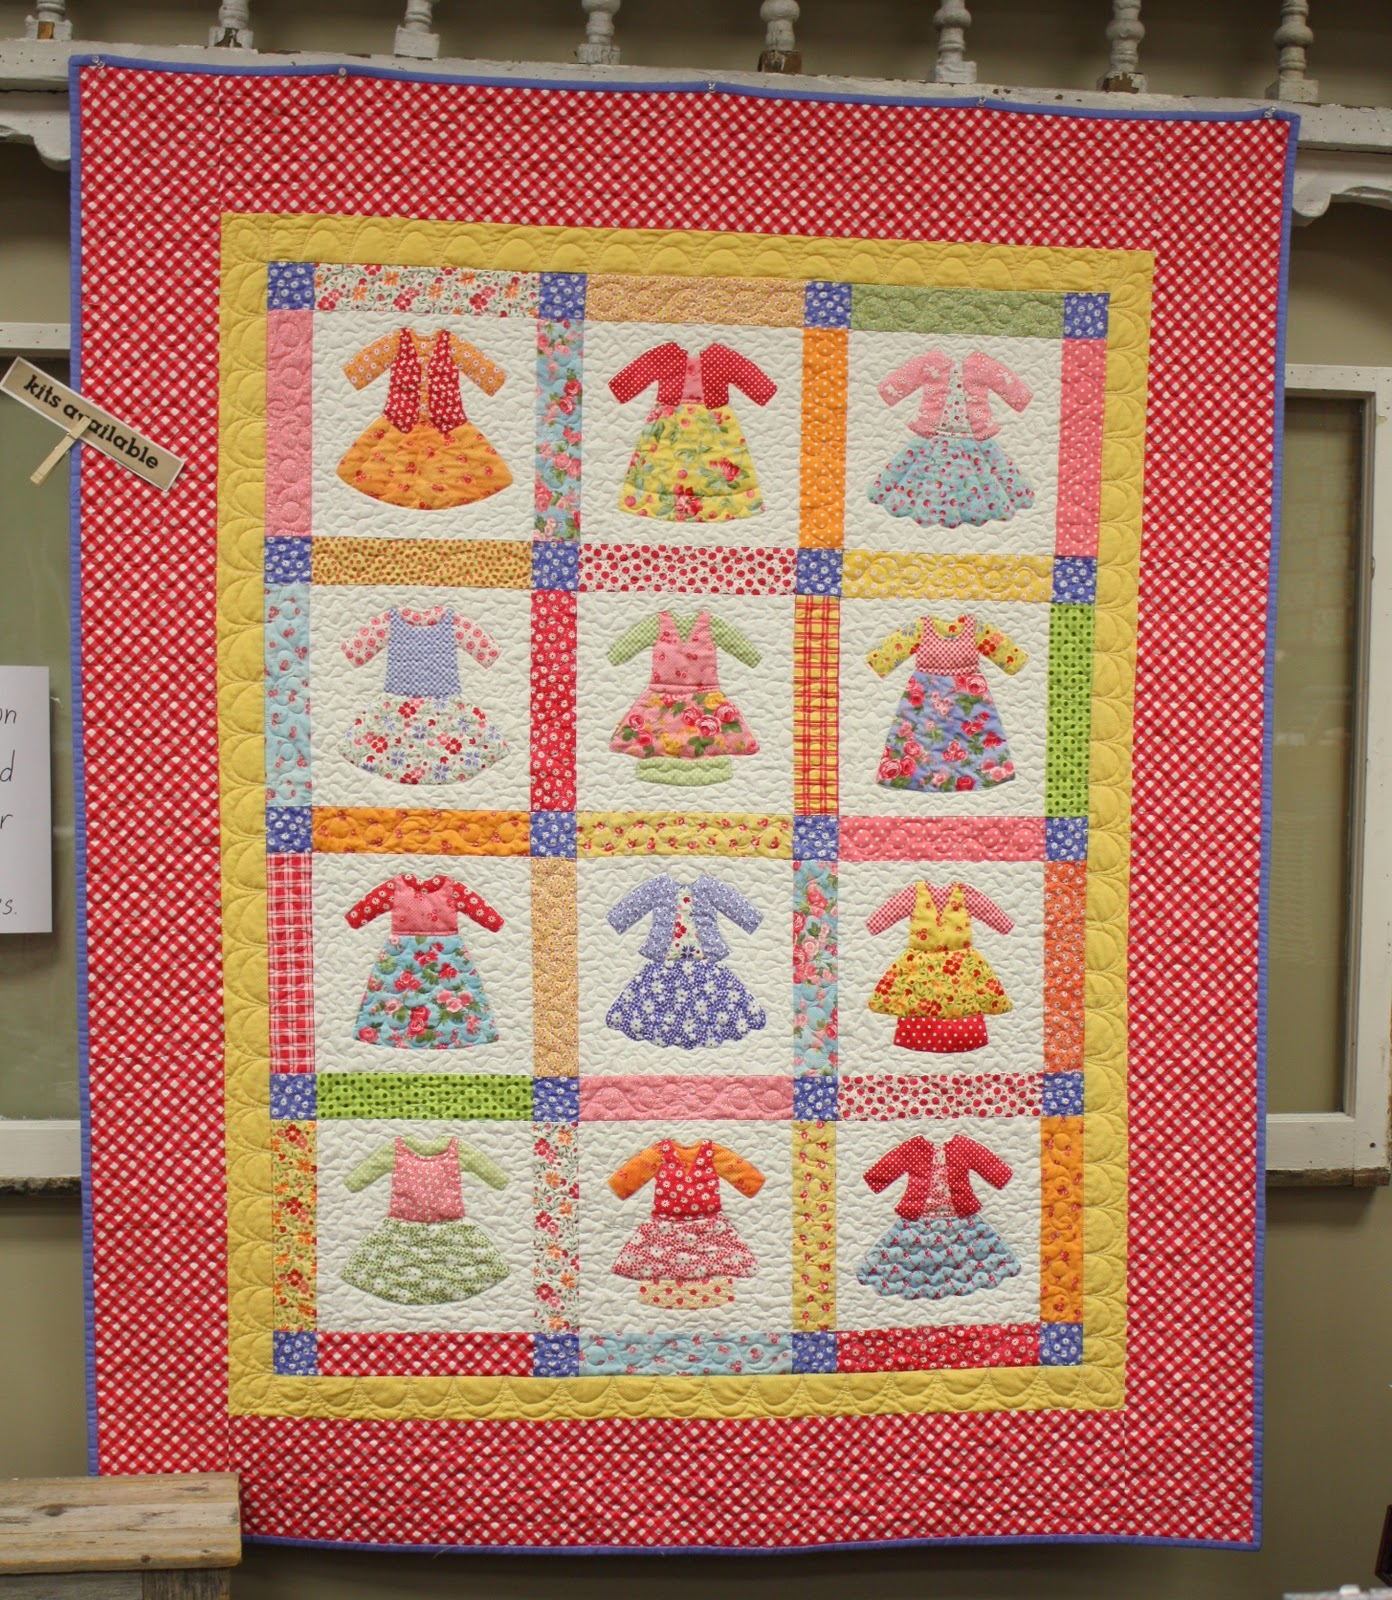 Americanquilting new quilt kits - Quilt rits ...